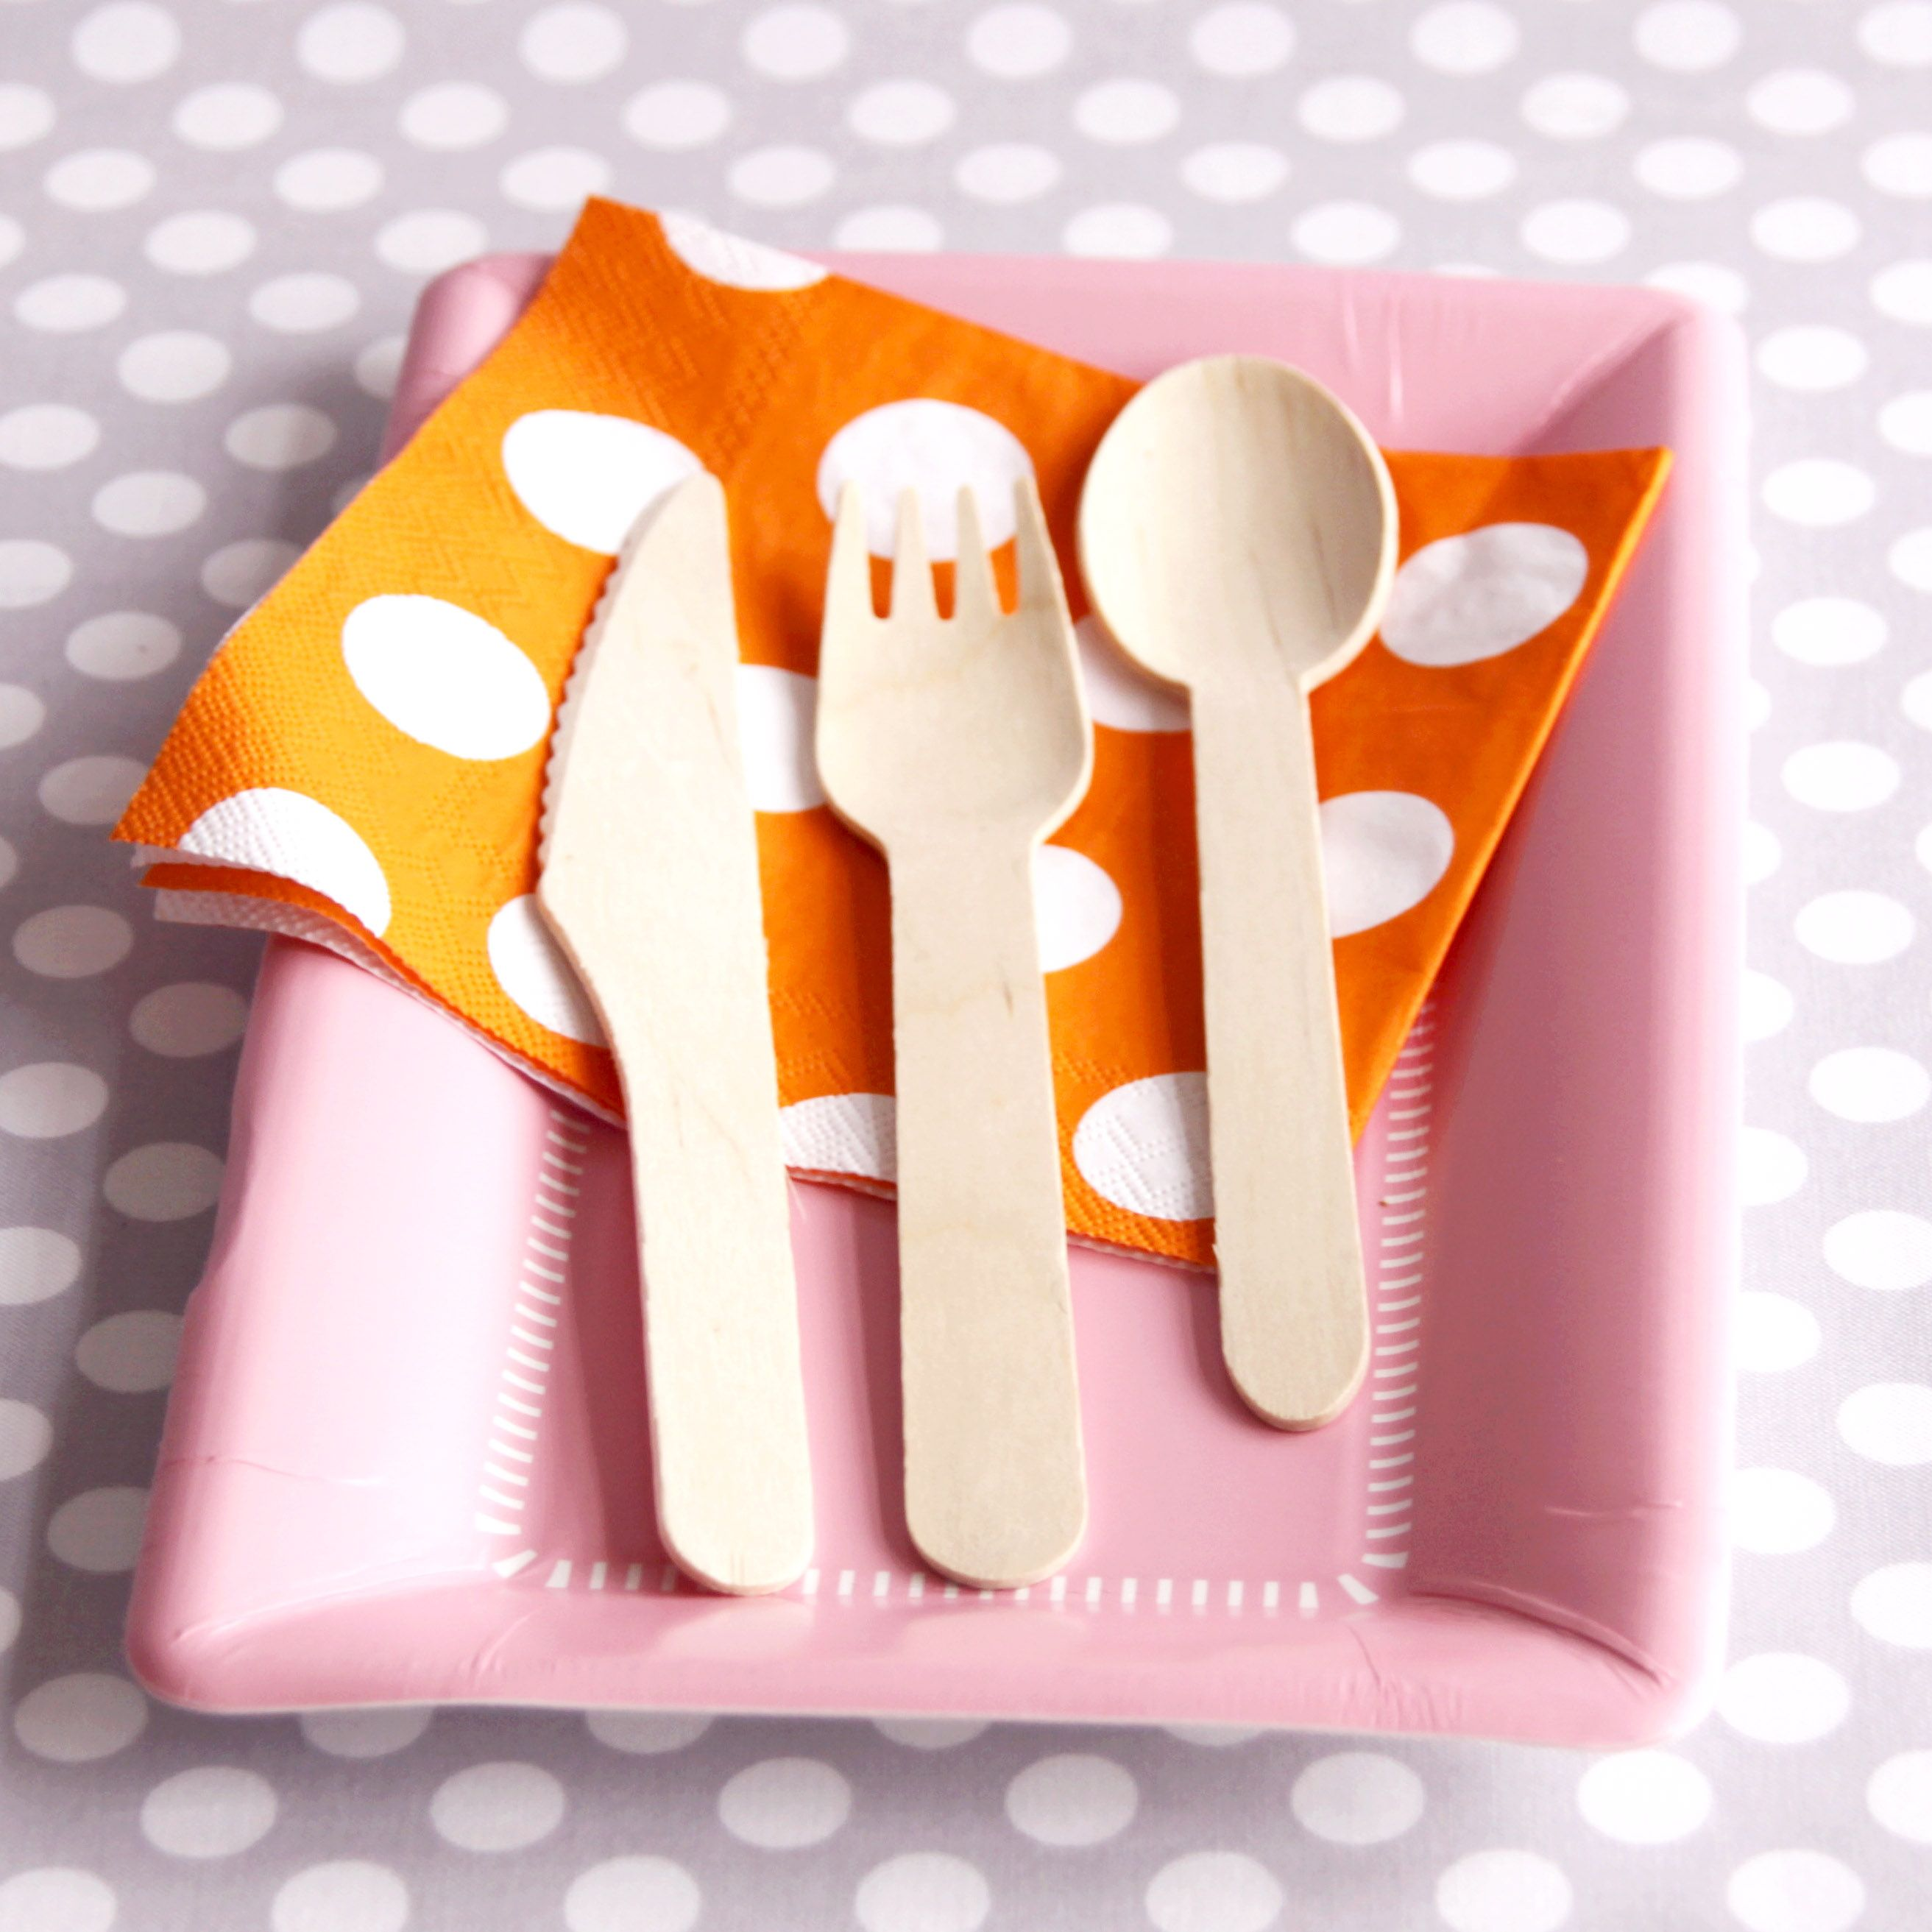 Wooden Utensils could be cute embellished with red rhinestones or little strawberries